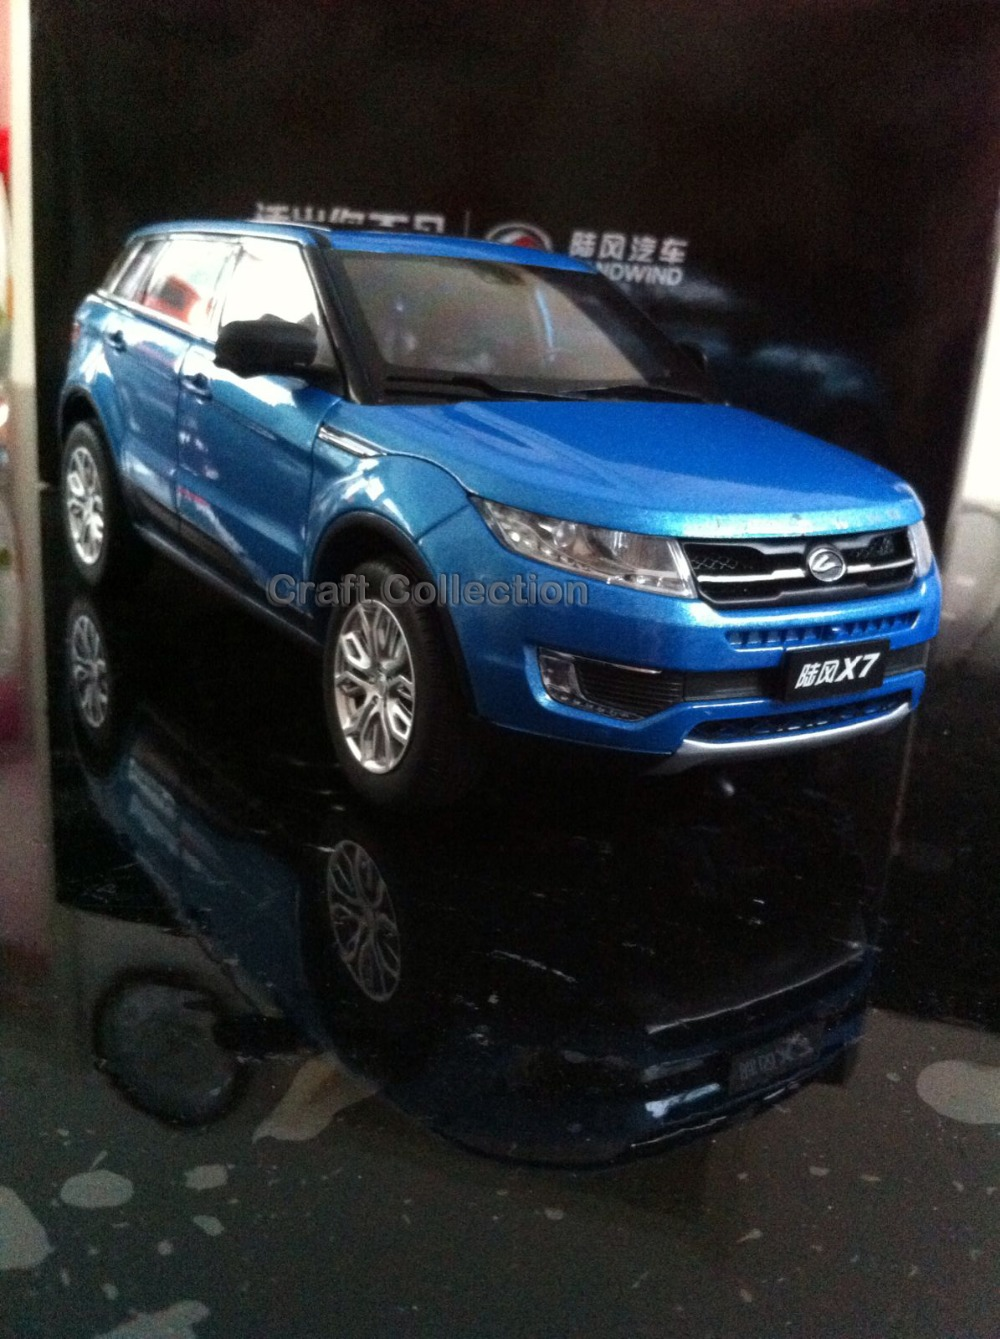 * 1/18 Car Model for JMC Land Wind X7 SUV Diecast Modell Auto Hot Selling Alloy Brinquedos Landwind Lufeng